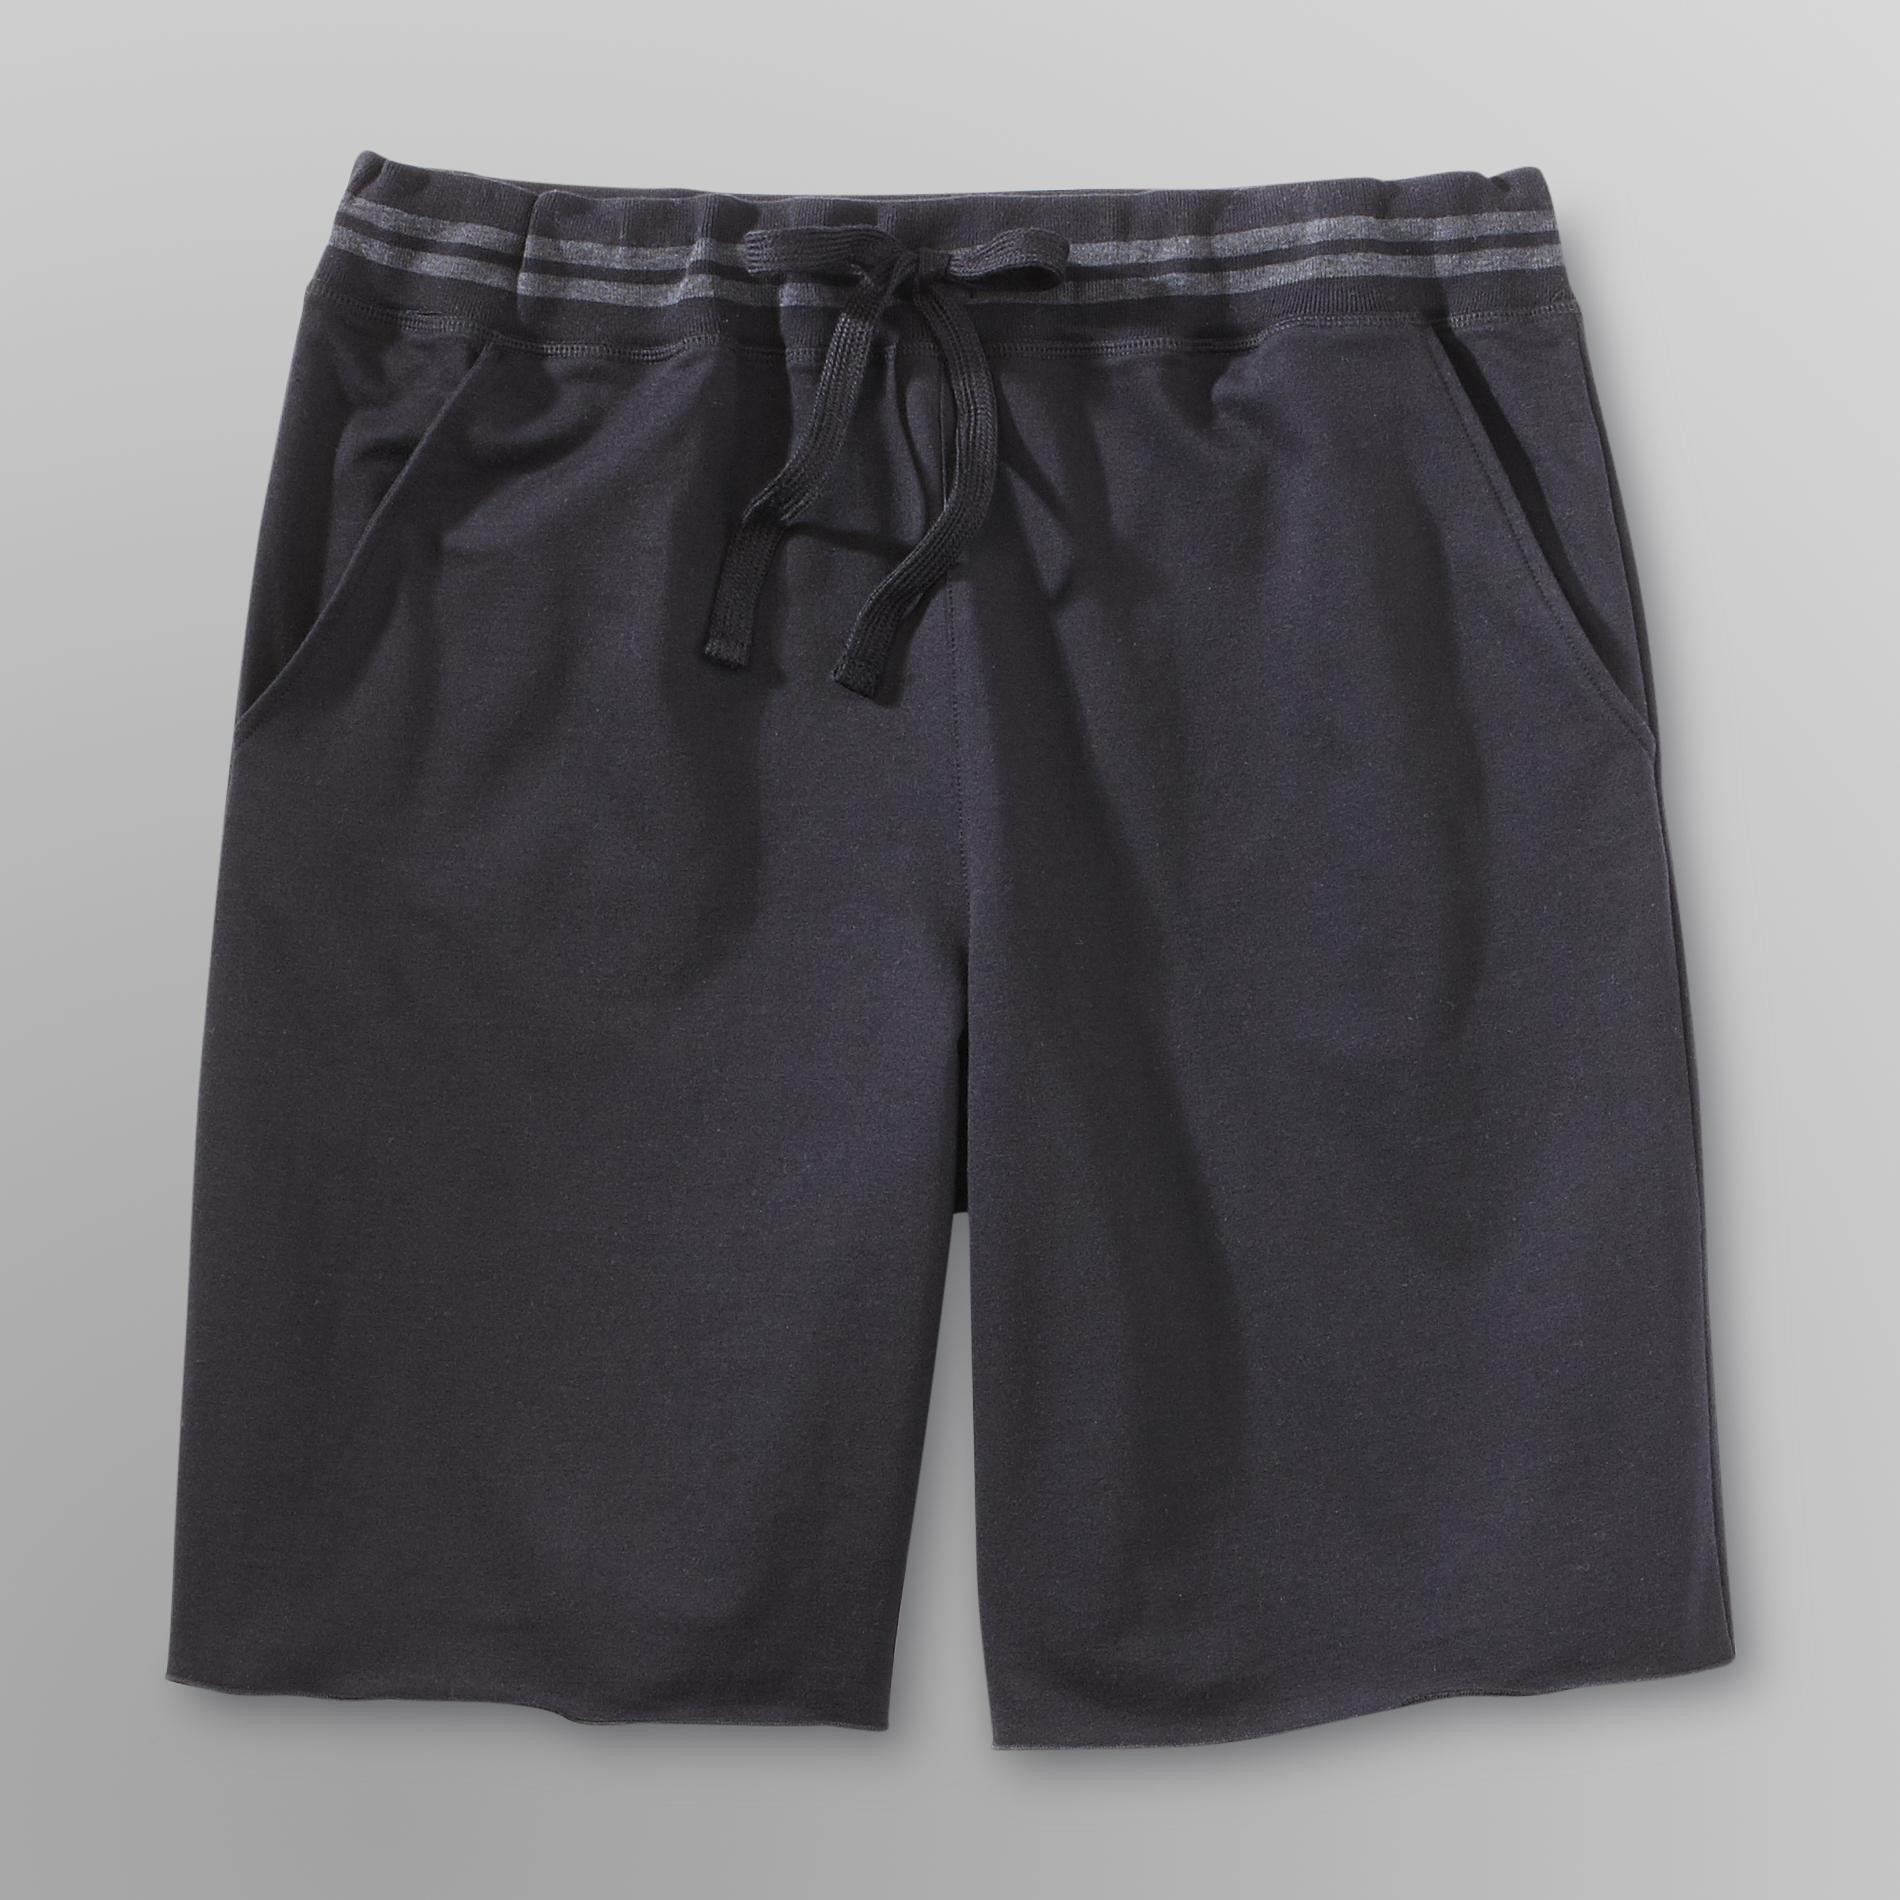 Joe Boxer Men's Jersey Knit Shorts at Kmart.com